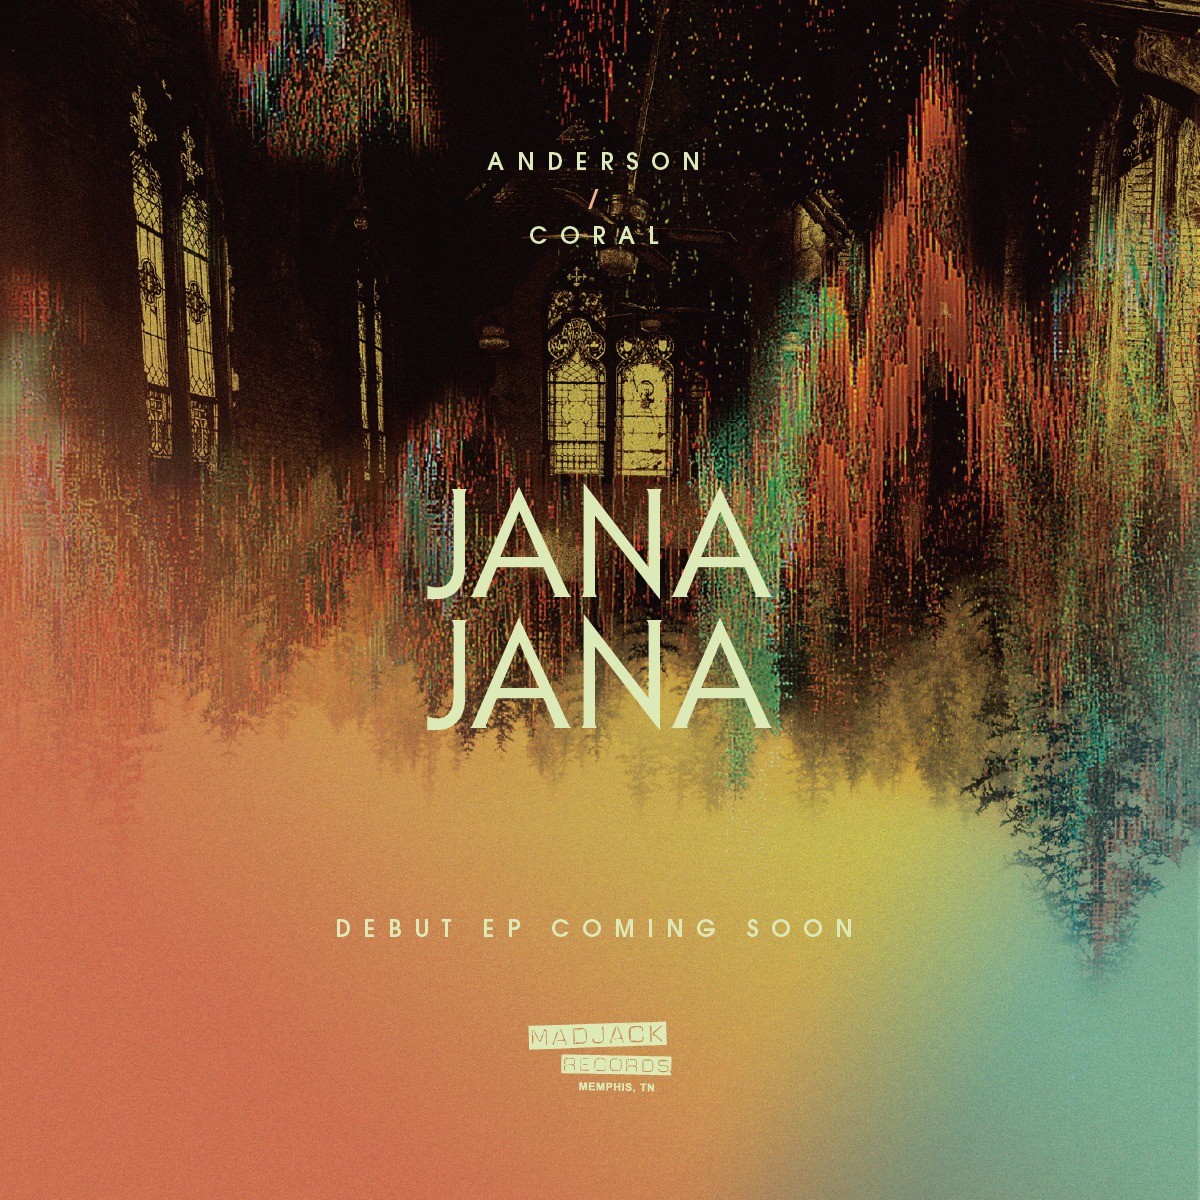 JANA-AnersonCoral-IG-ComingSoon.png